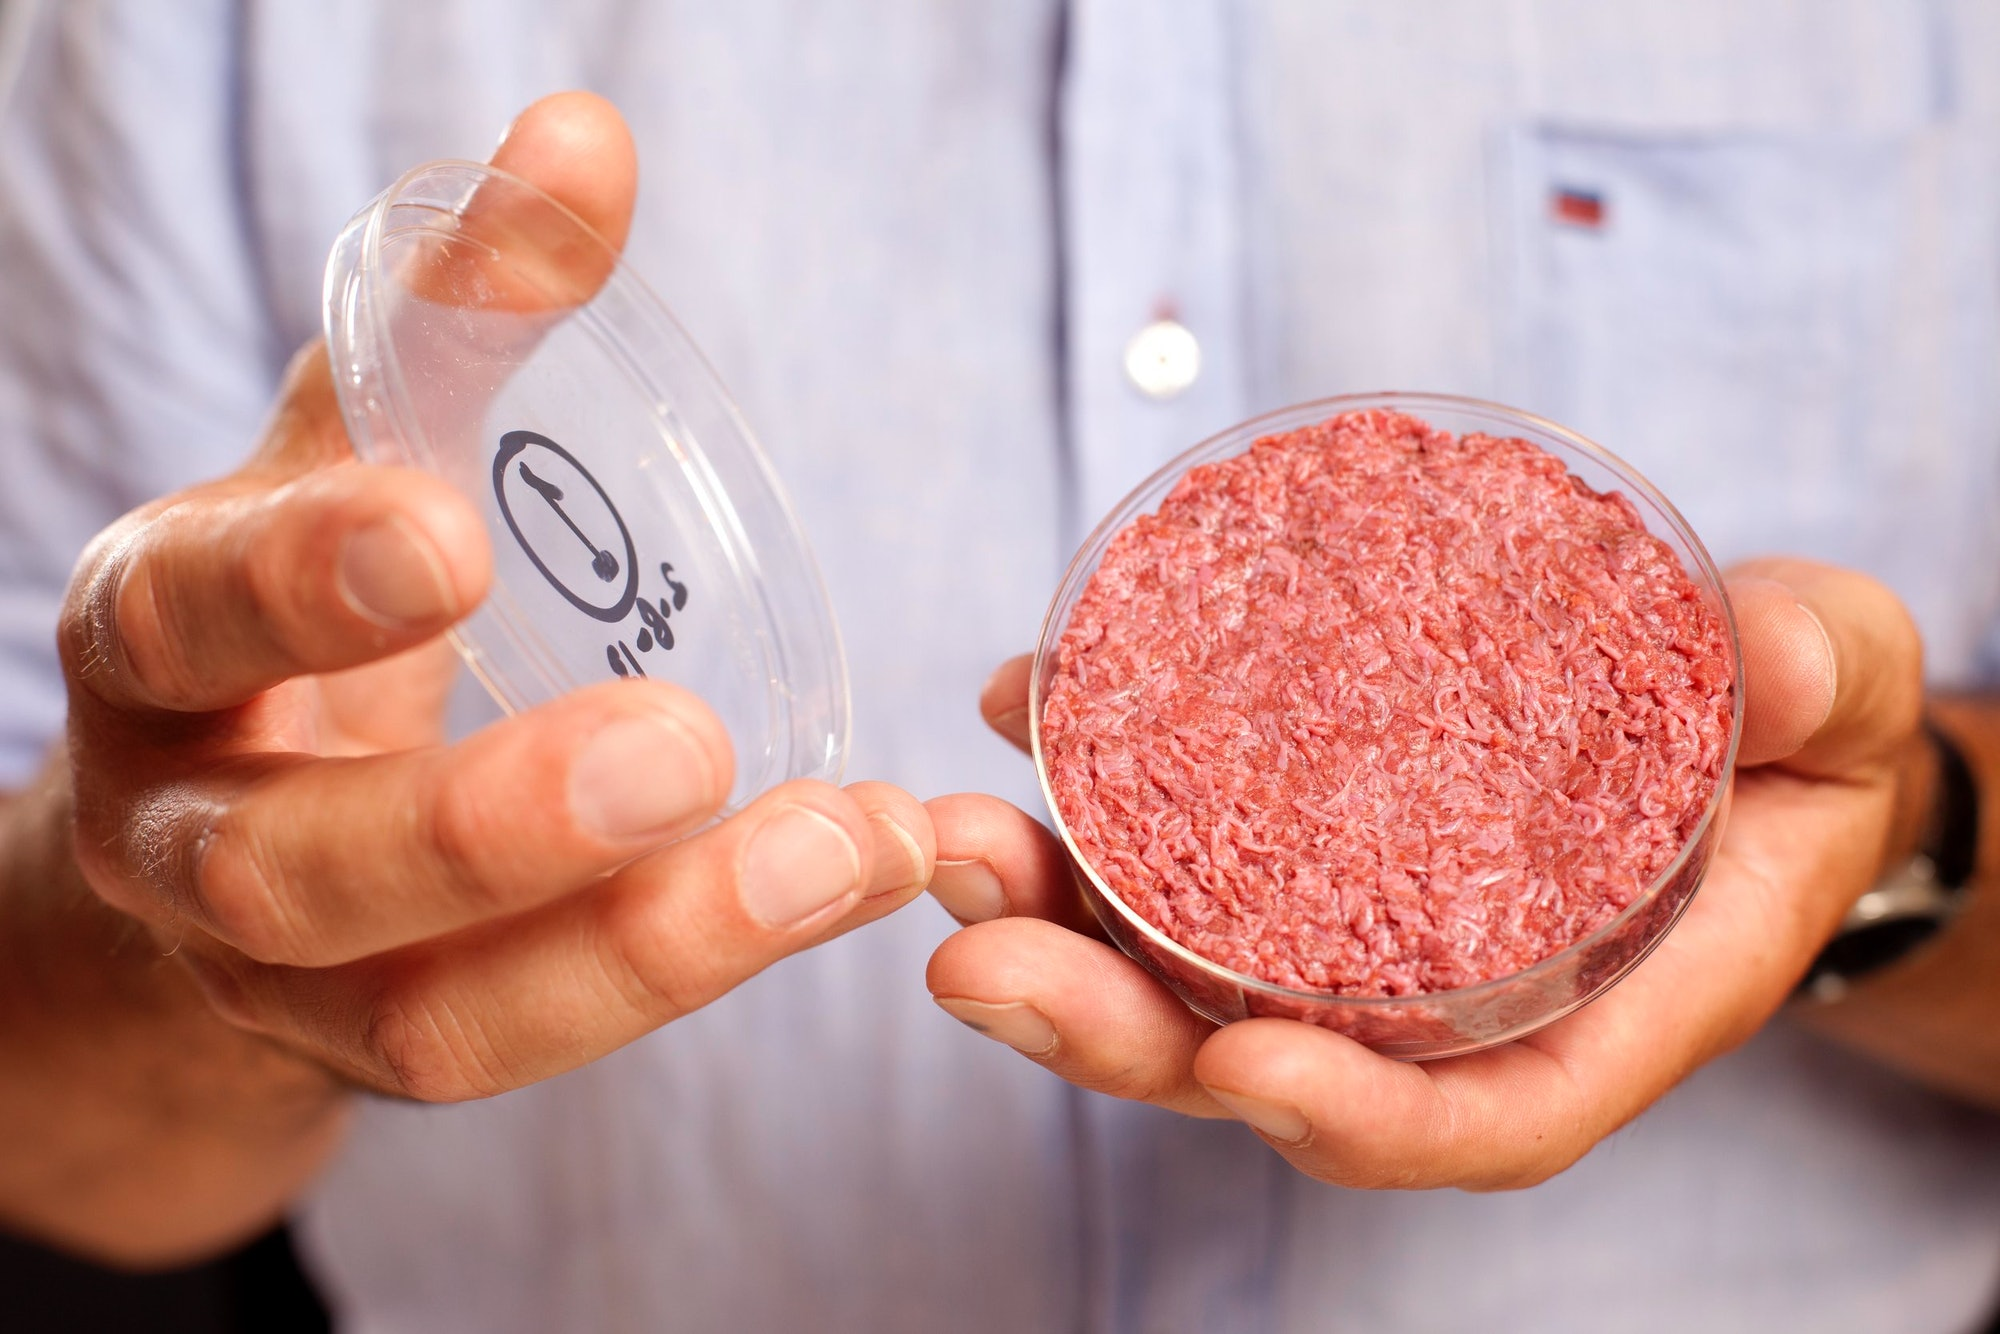 The world's first lab-grown burger, as held by Mark Post.